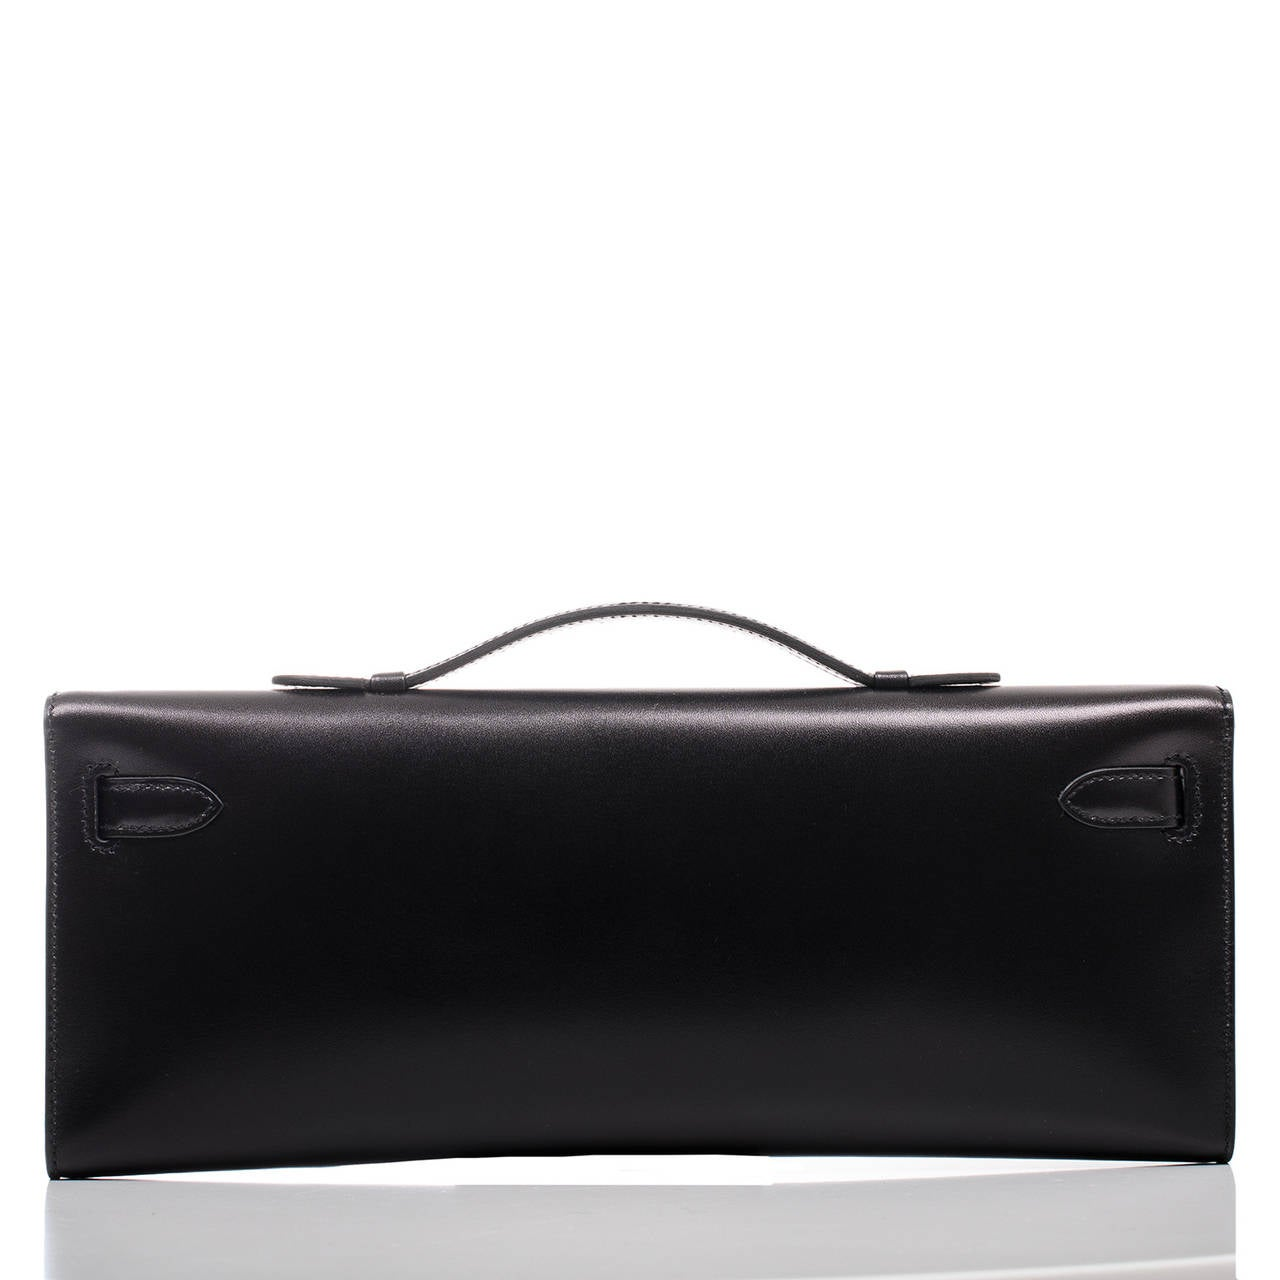 hermes kelly cut box bag in black with palladium guilloche hardware